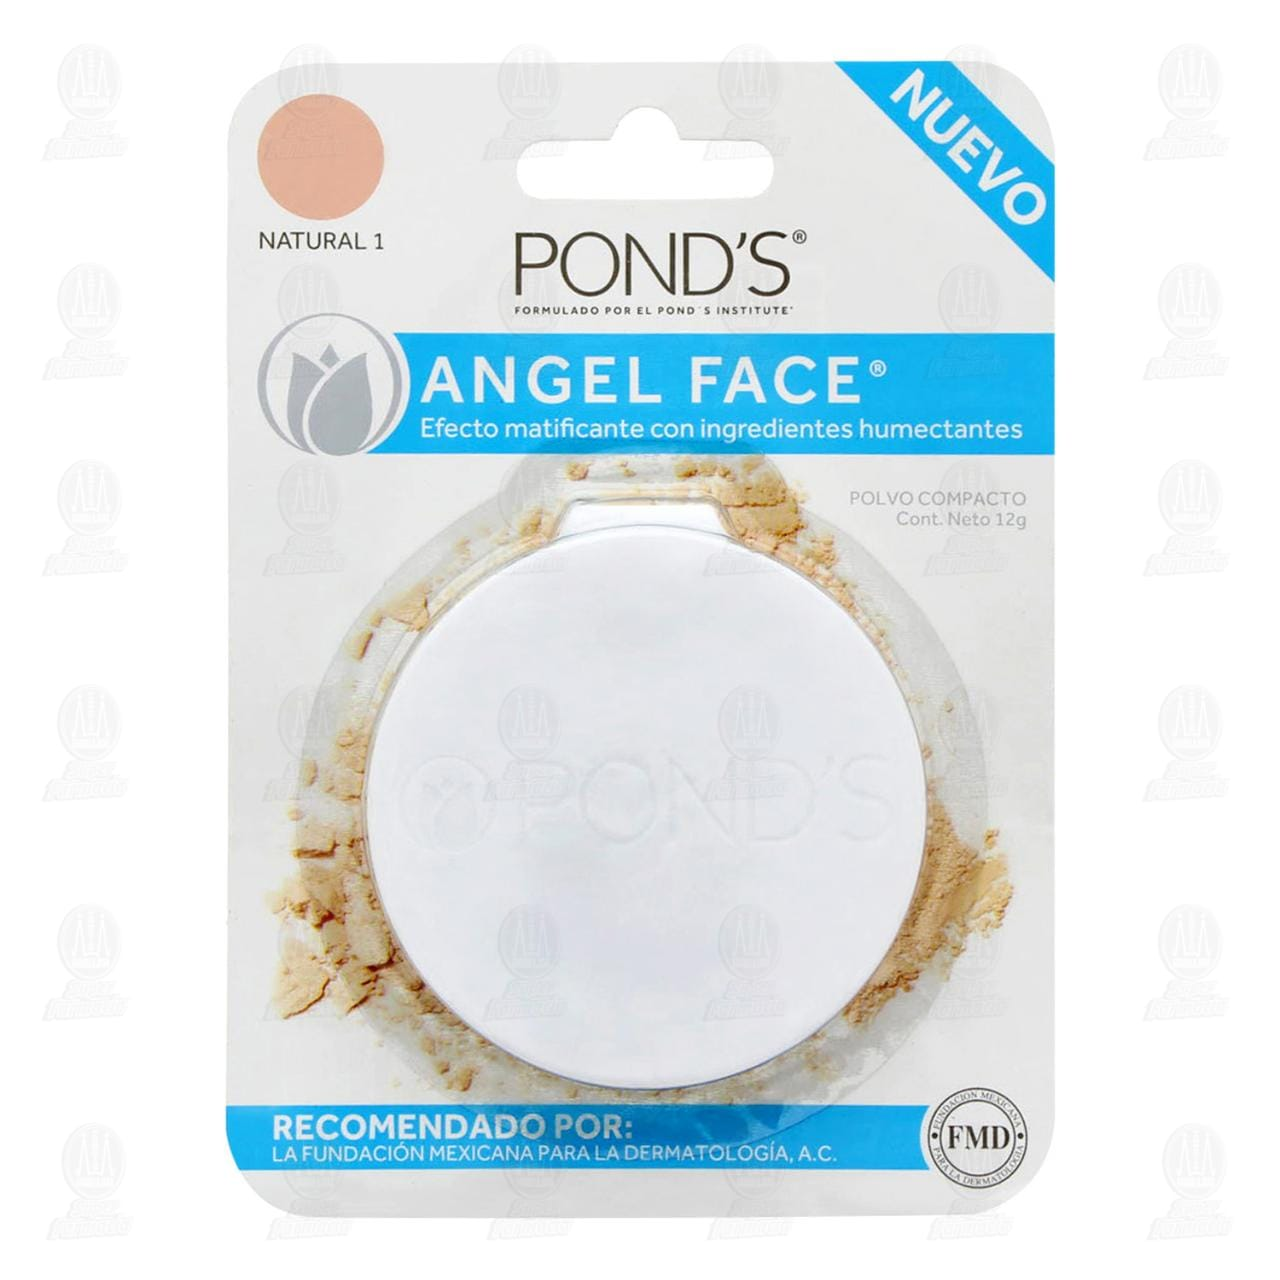 Maquillaje en Polvo Pond's Angel Face Color Natural 1, 12 gr.